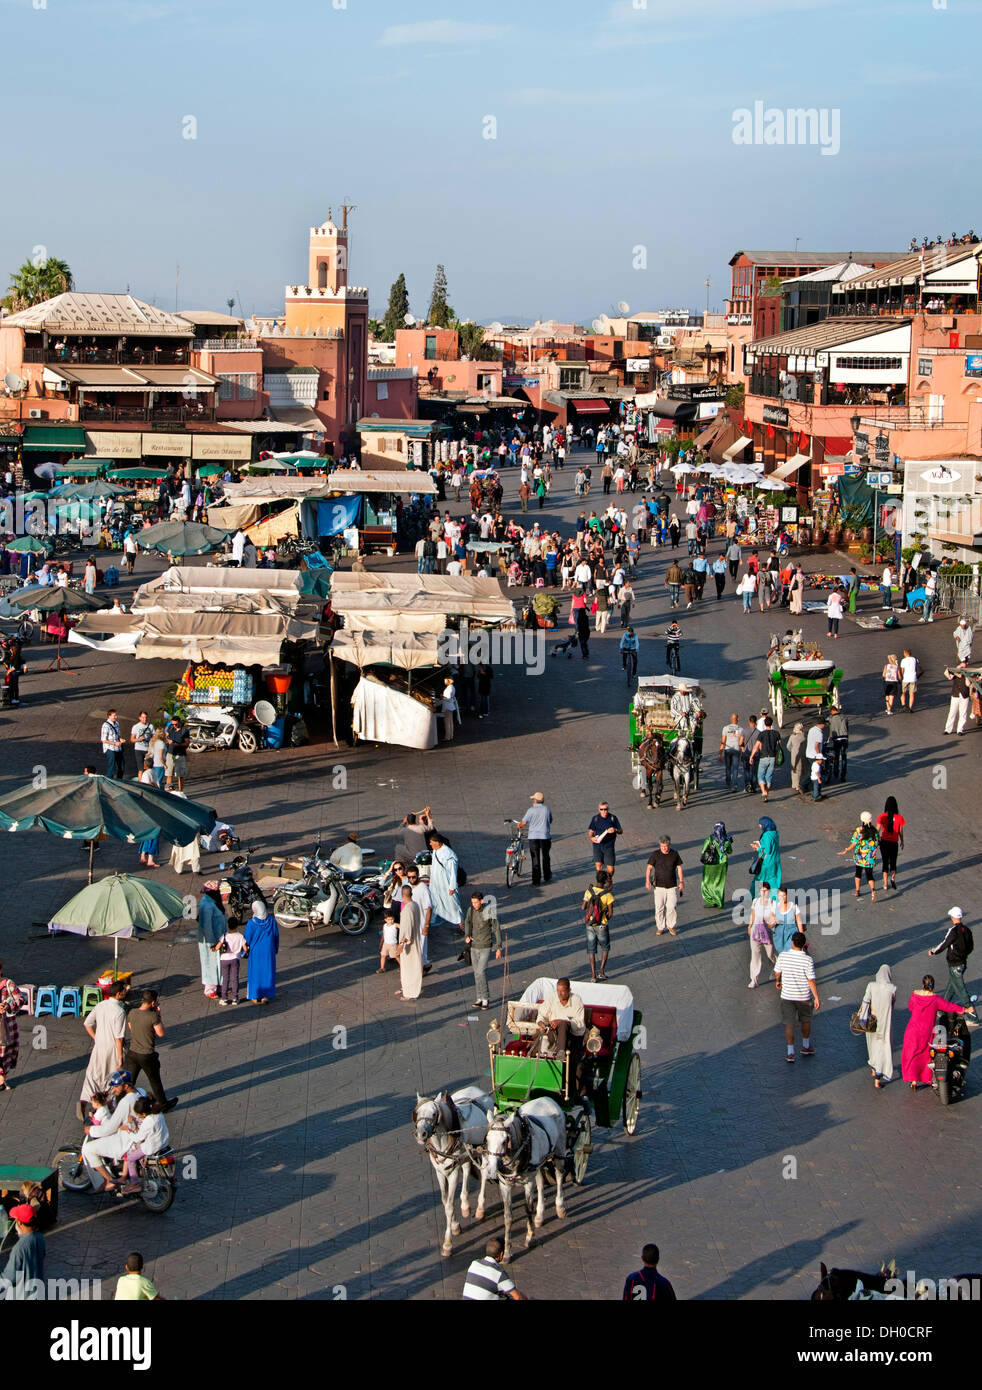 Jamaa el Fna is a square and market place in Marrakesh's Medina quarter (old city) Morocco Stock Photo